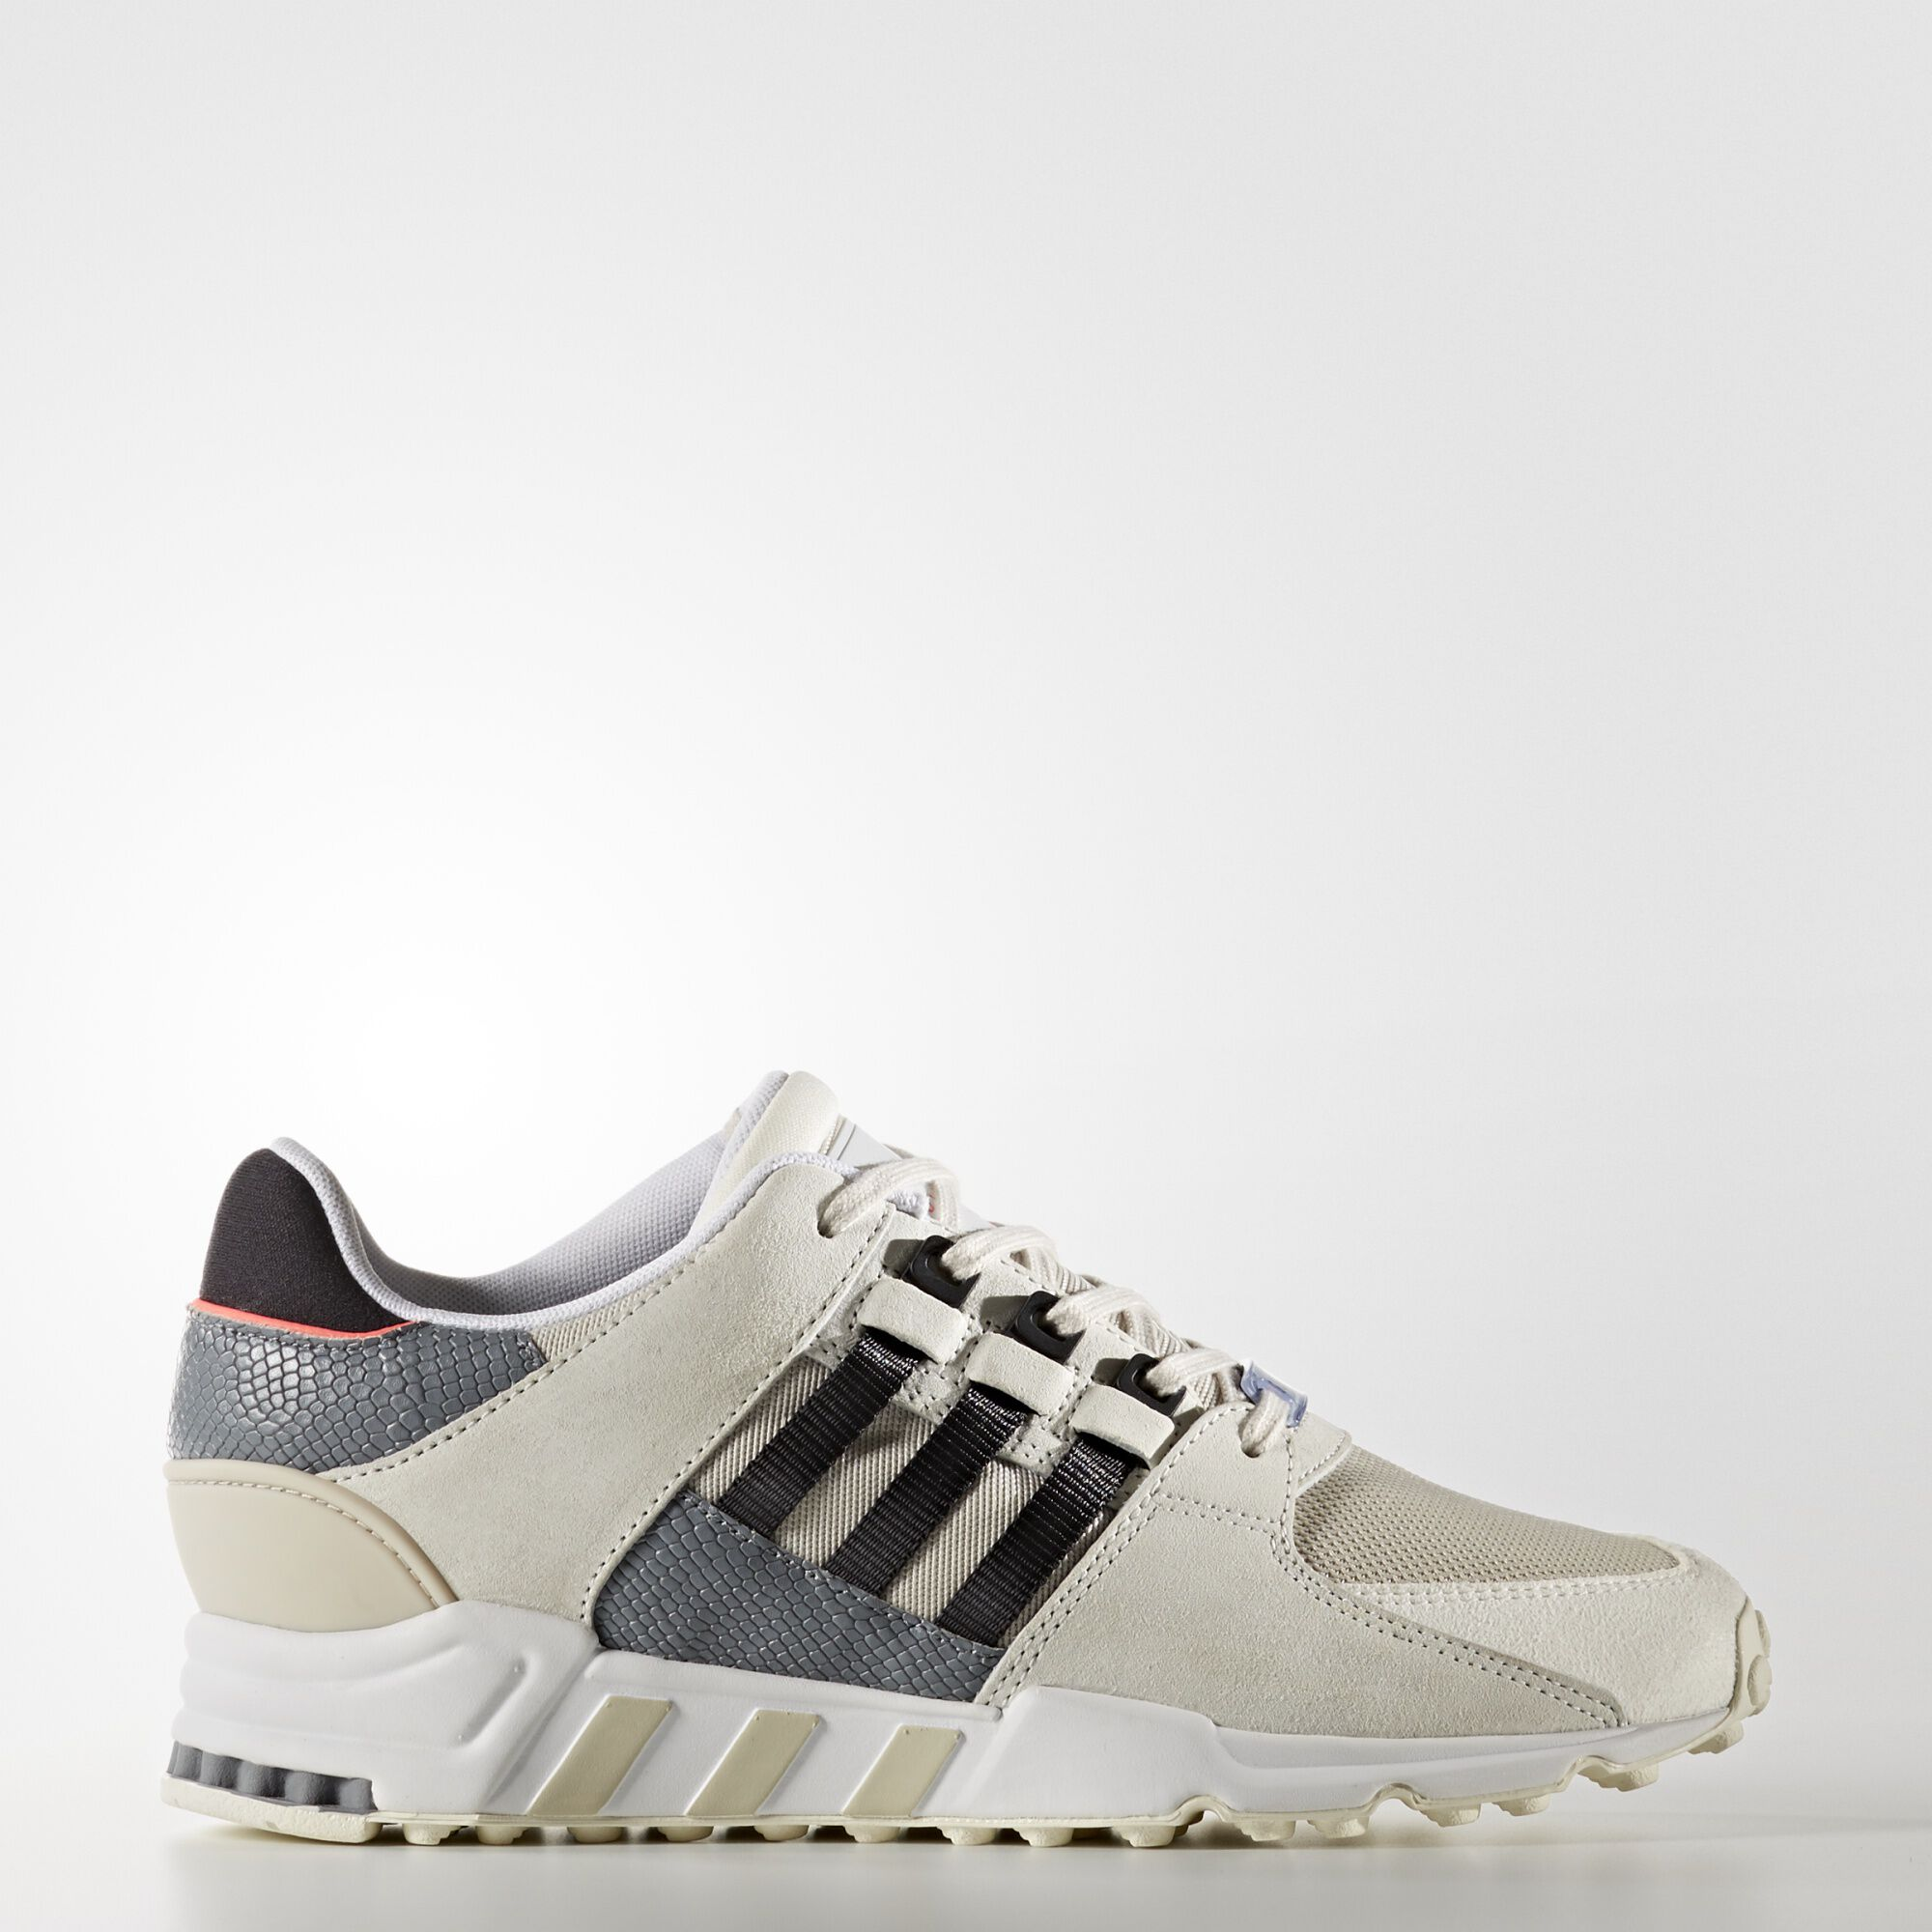 adidas eqt racing for sale